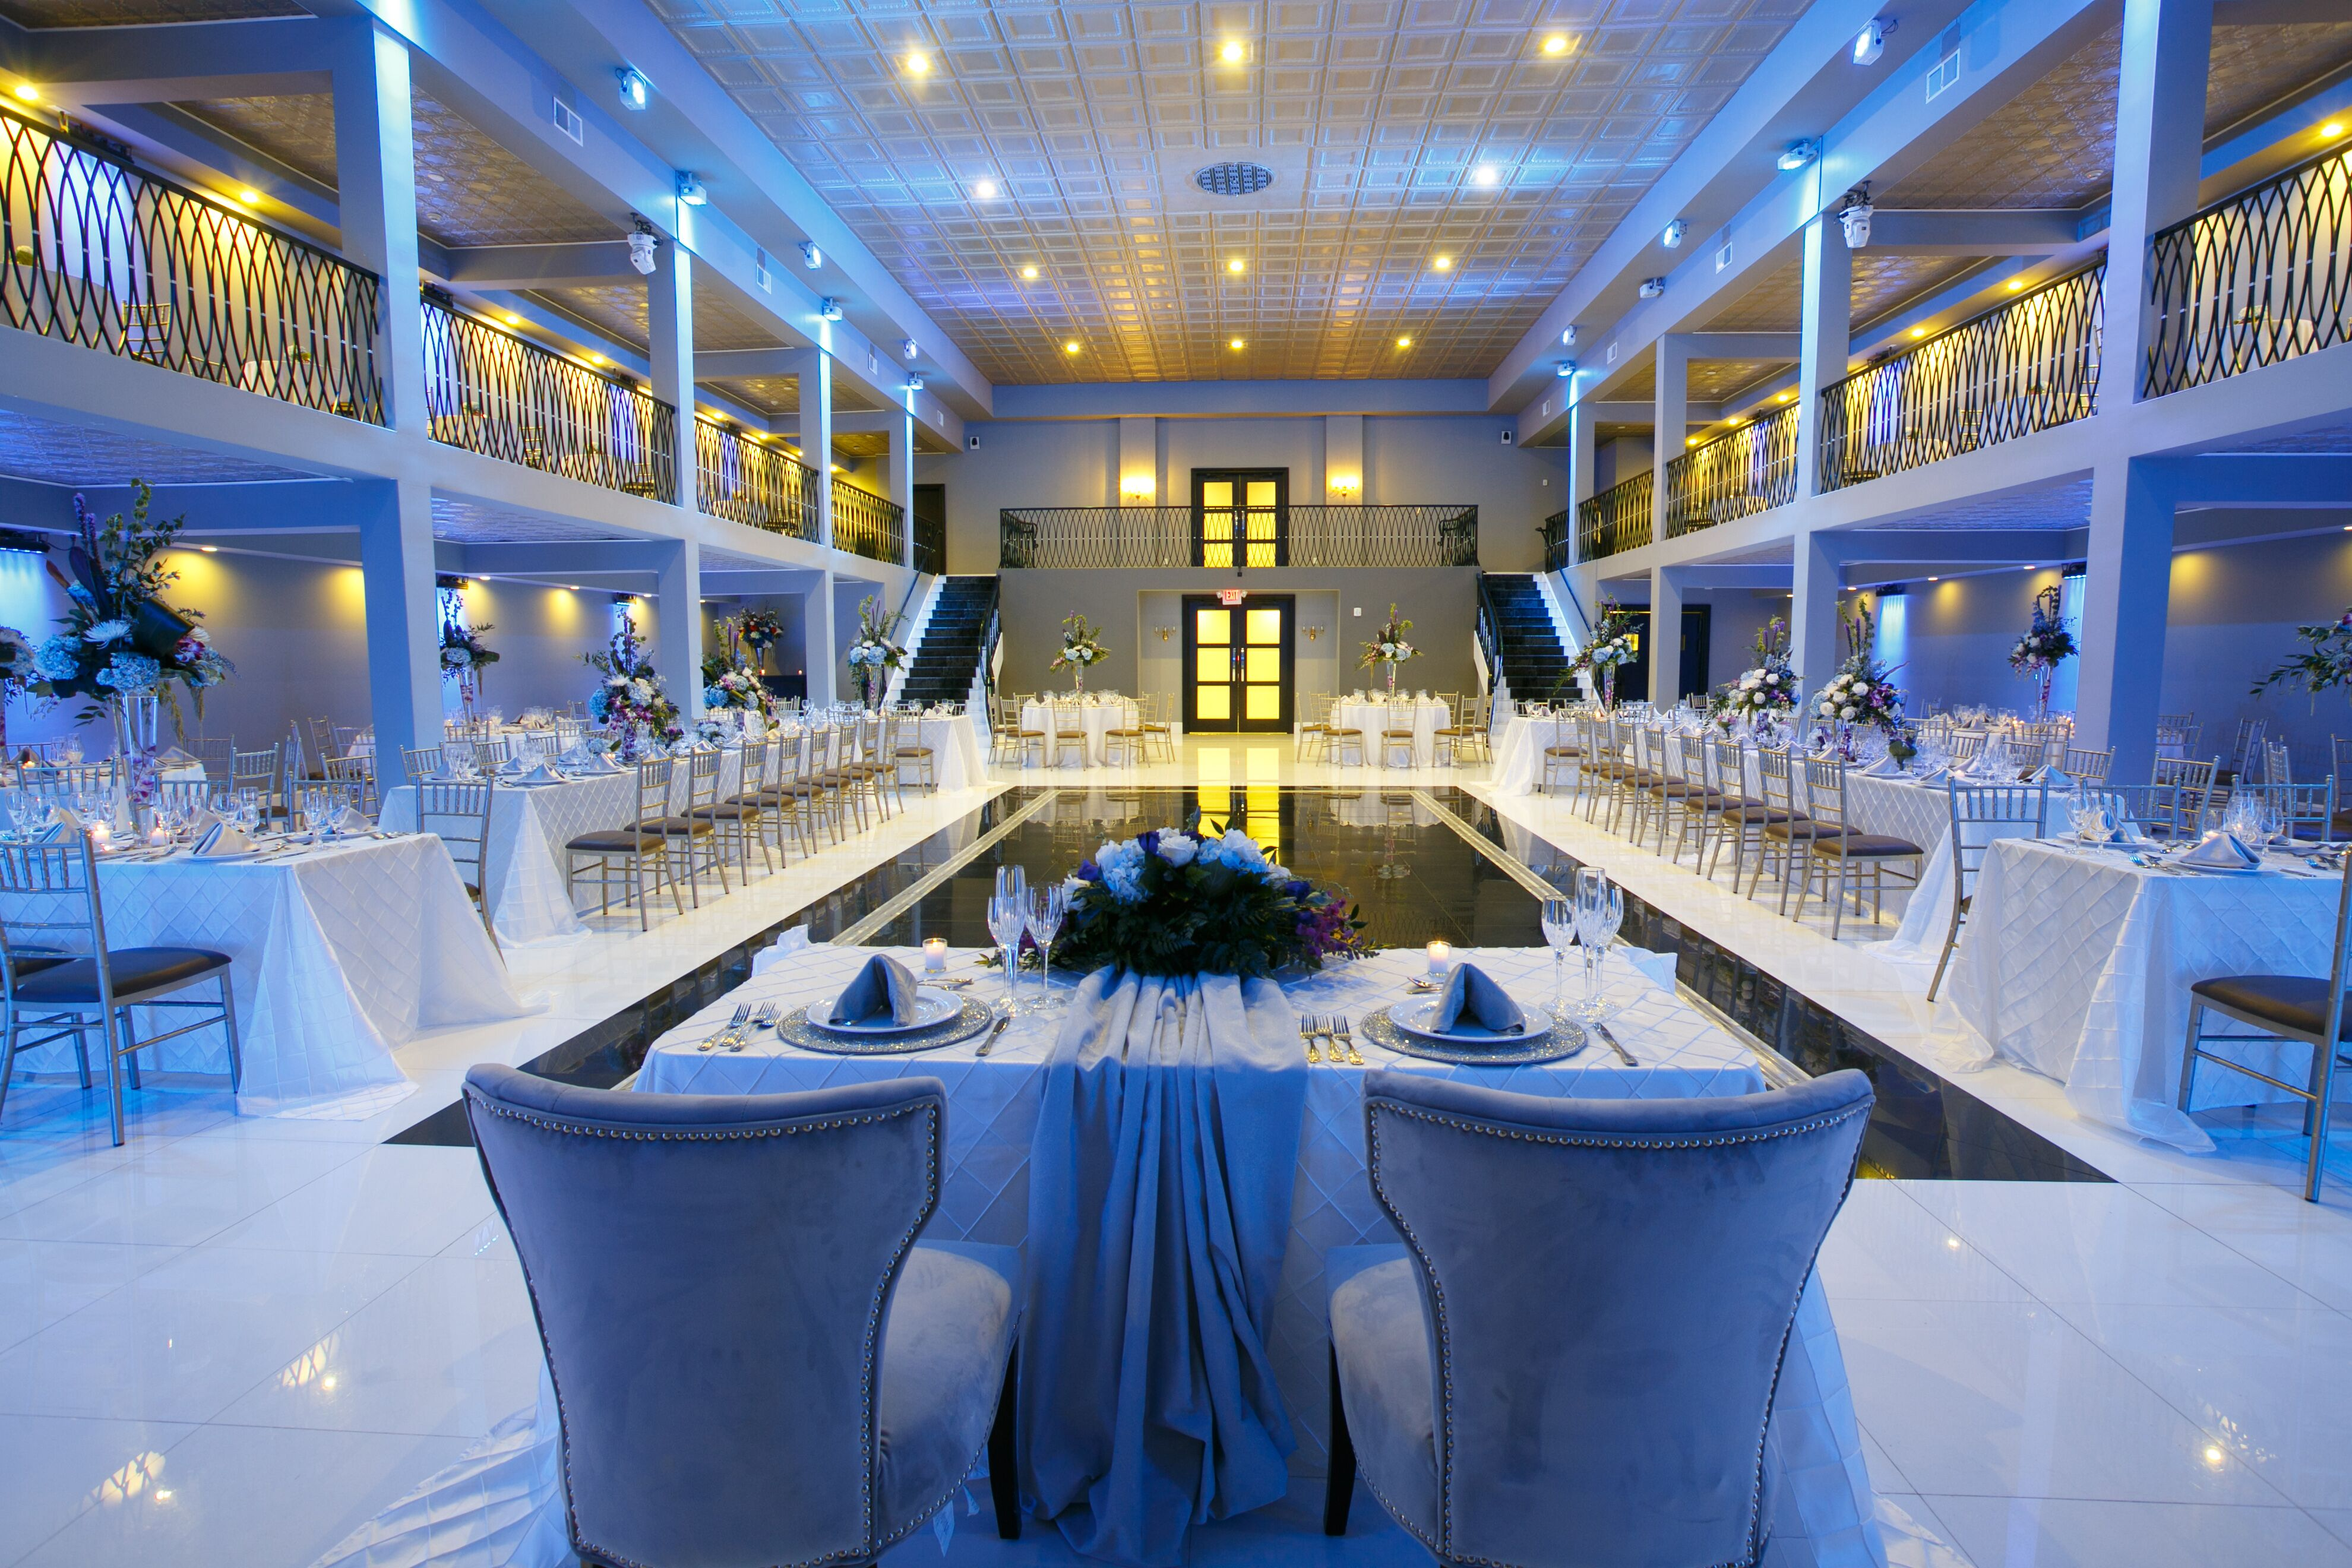 Wedding Reception Venues in Weehawken NJ The Knot